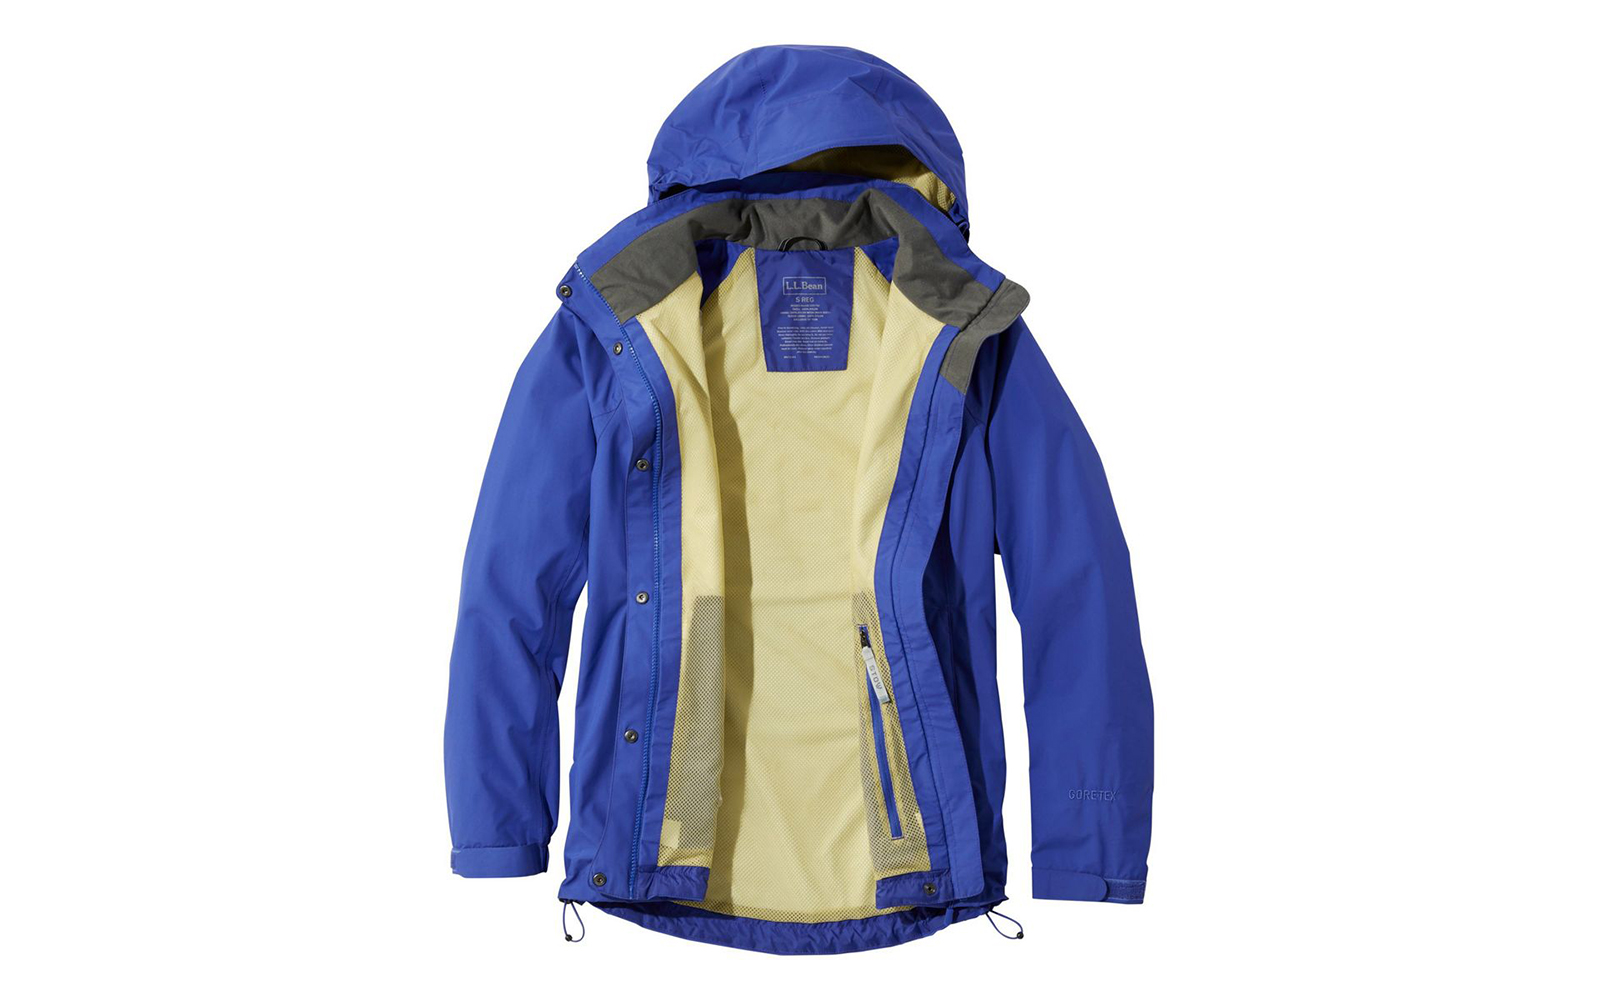 Most Durable Option: L.L. Bean Stowaway Rain Jacket